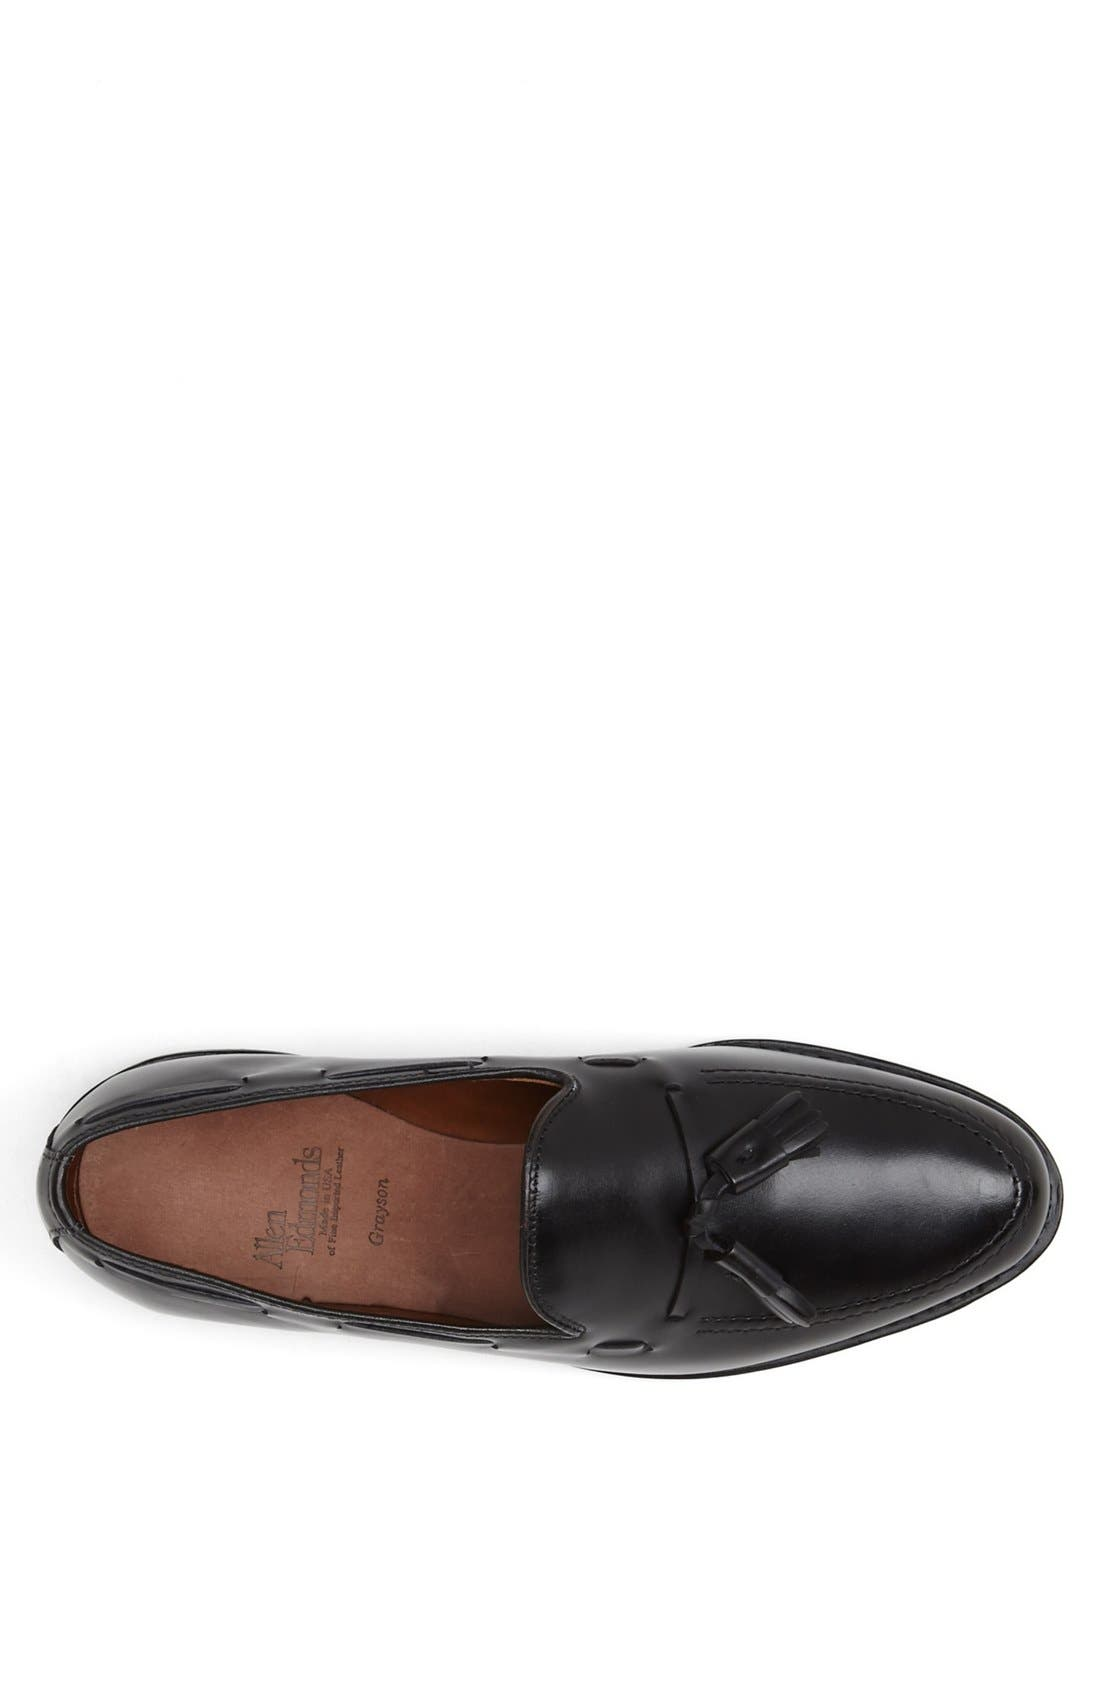 Alternate Image 3  - Allen Edmonds 'Grayson' Tassel Loafer (Men)